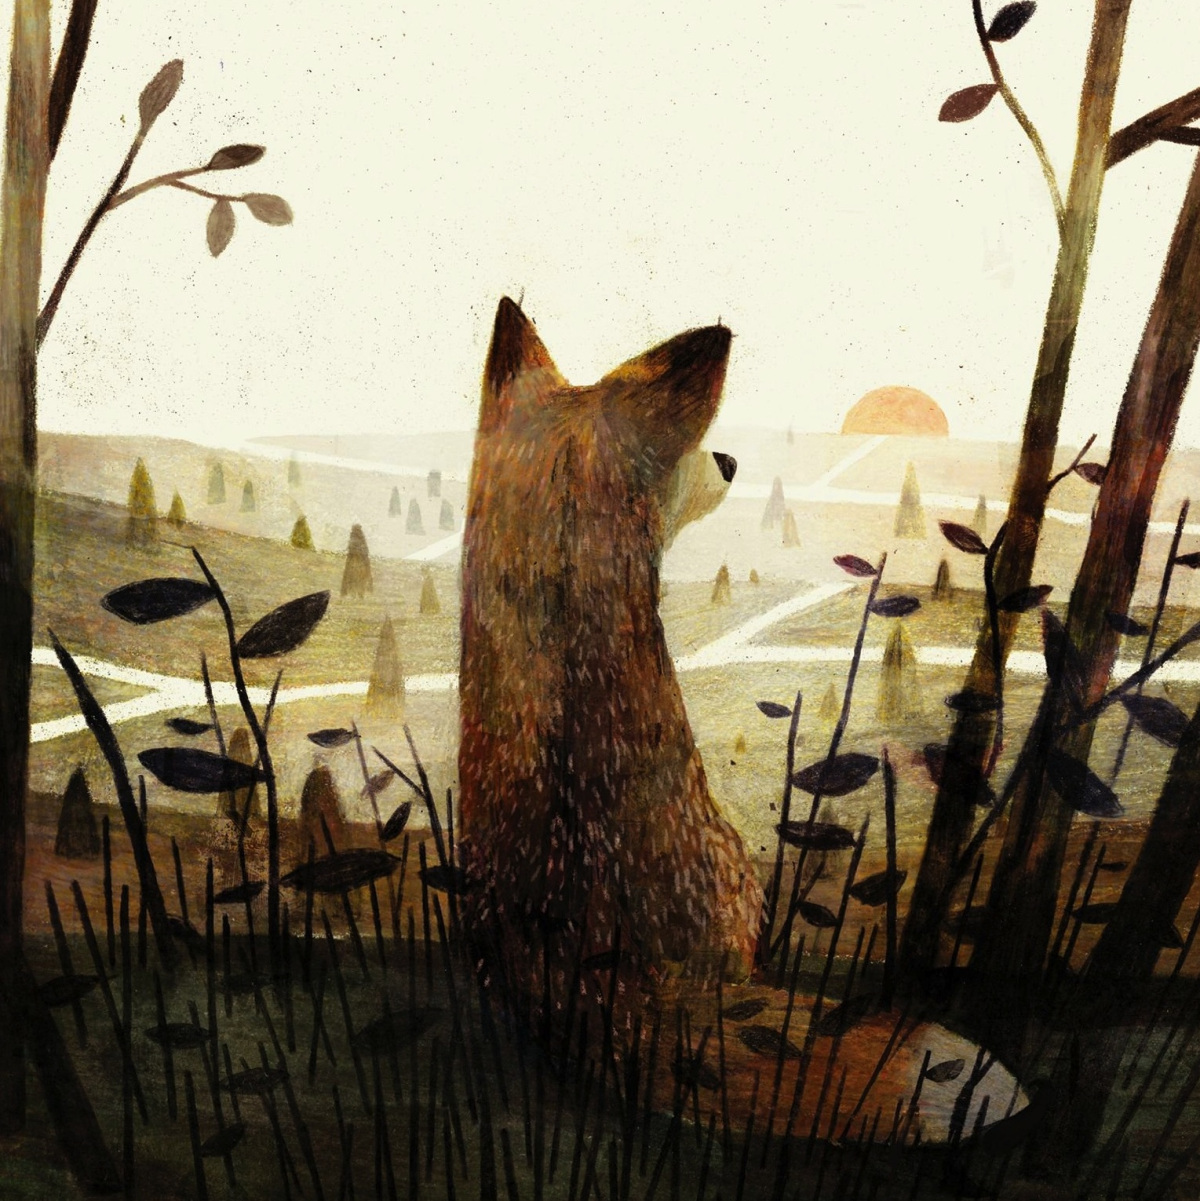 Pax by Sara Pennypacker, illustrated by Jon Klassen